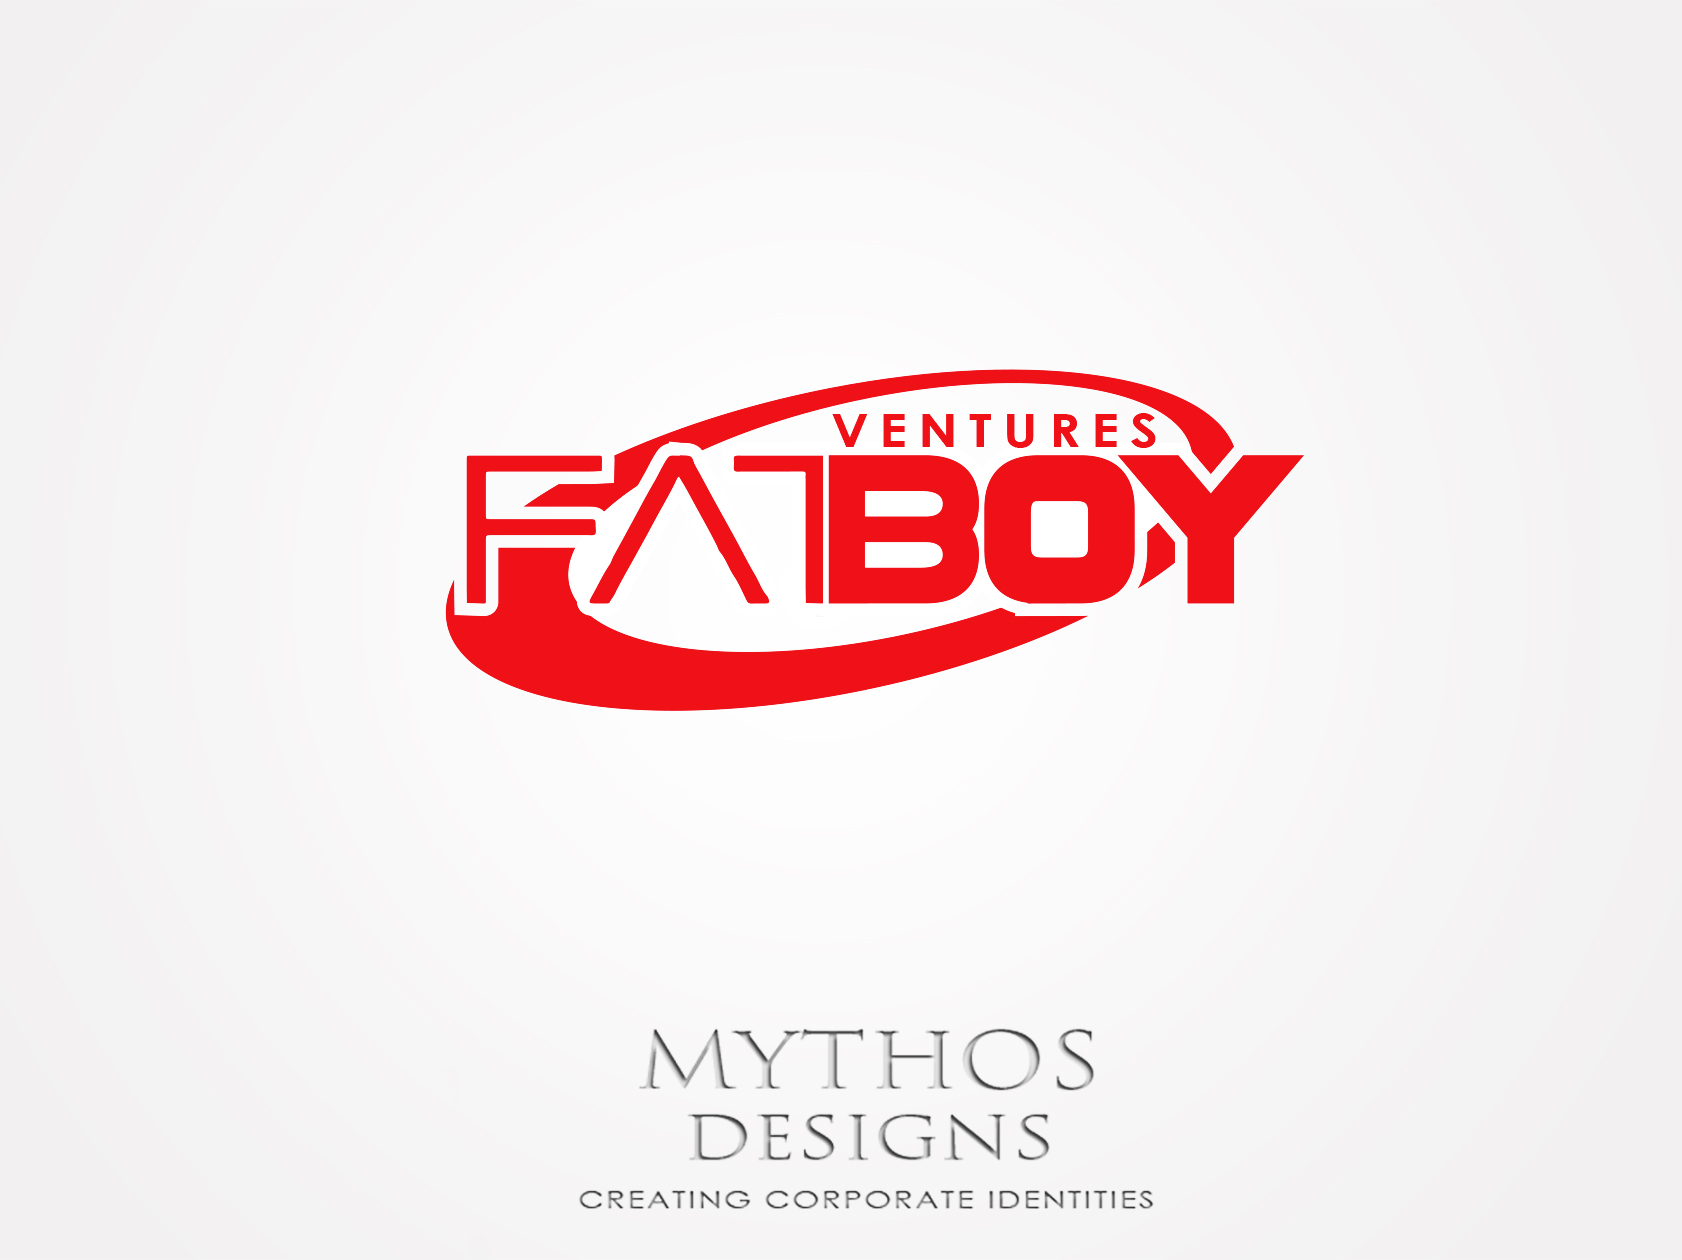 Logo Design by Mythos Designs - Entry No. 126 in the Logo Design Contest Fun Logo Design for Fat Boy Ventures.